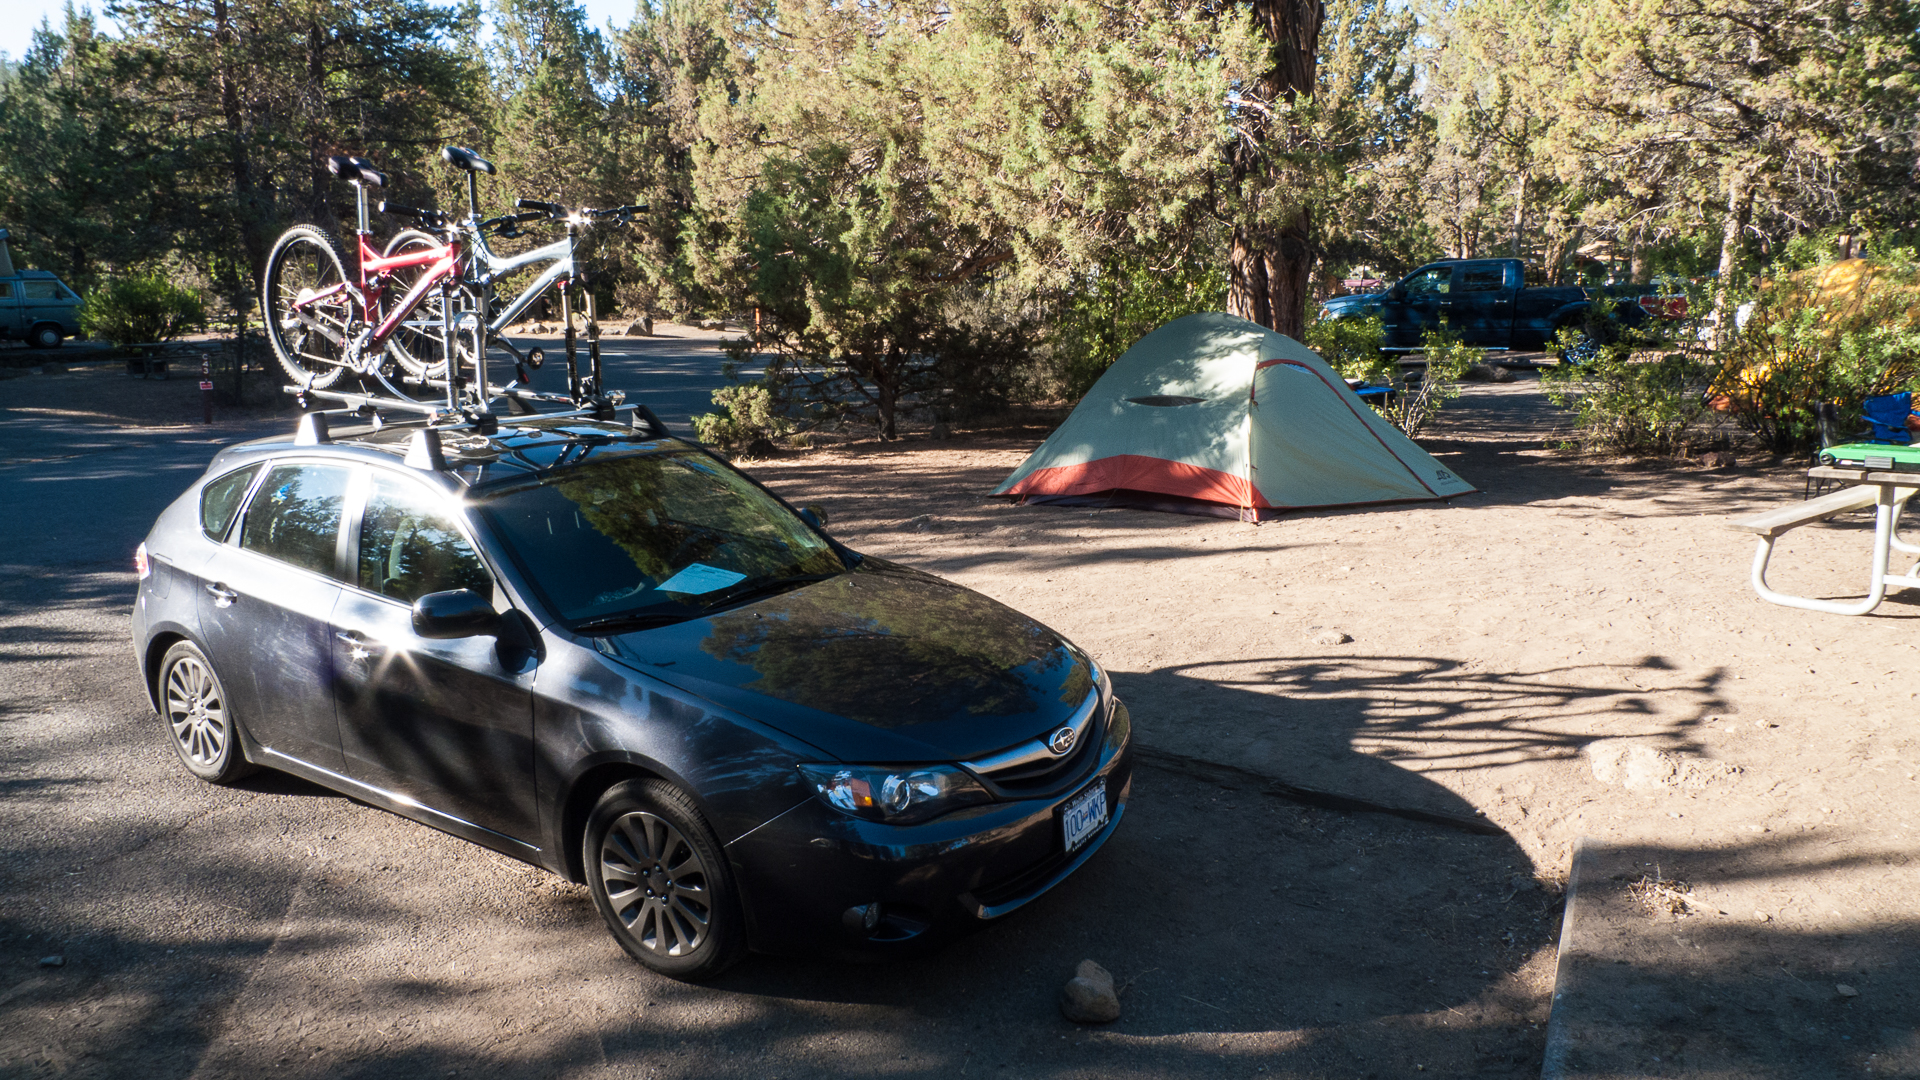 Camp all set up at Tumalo State Park. Welcome to the desert.